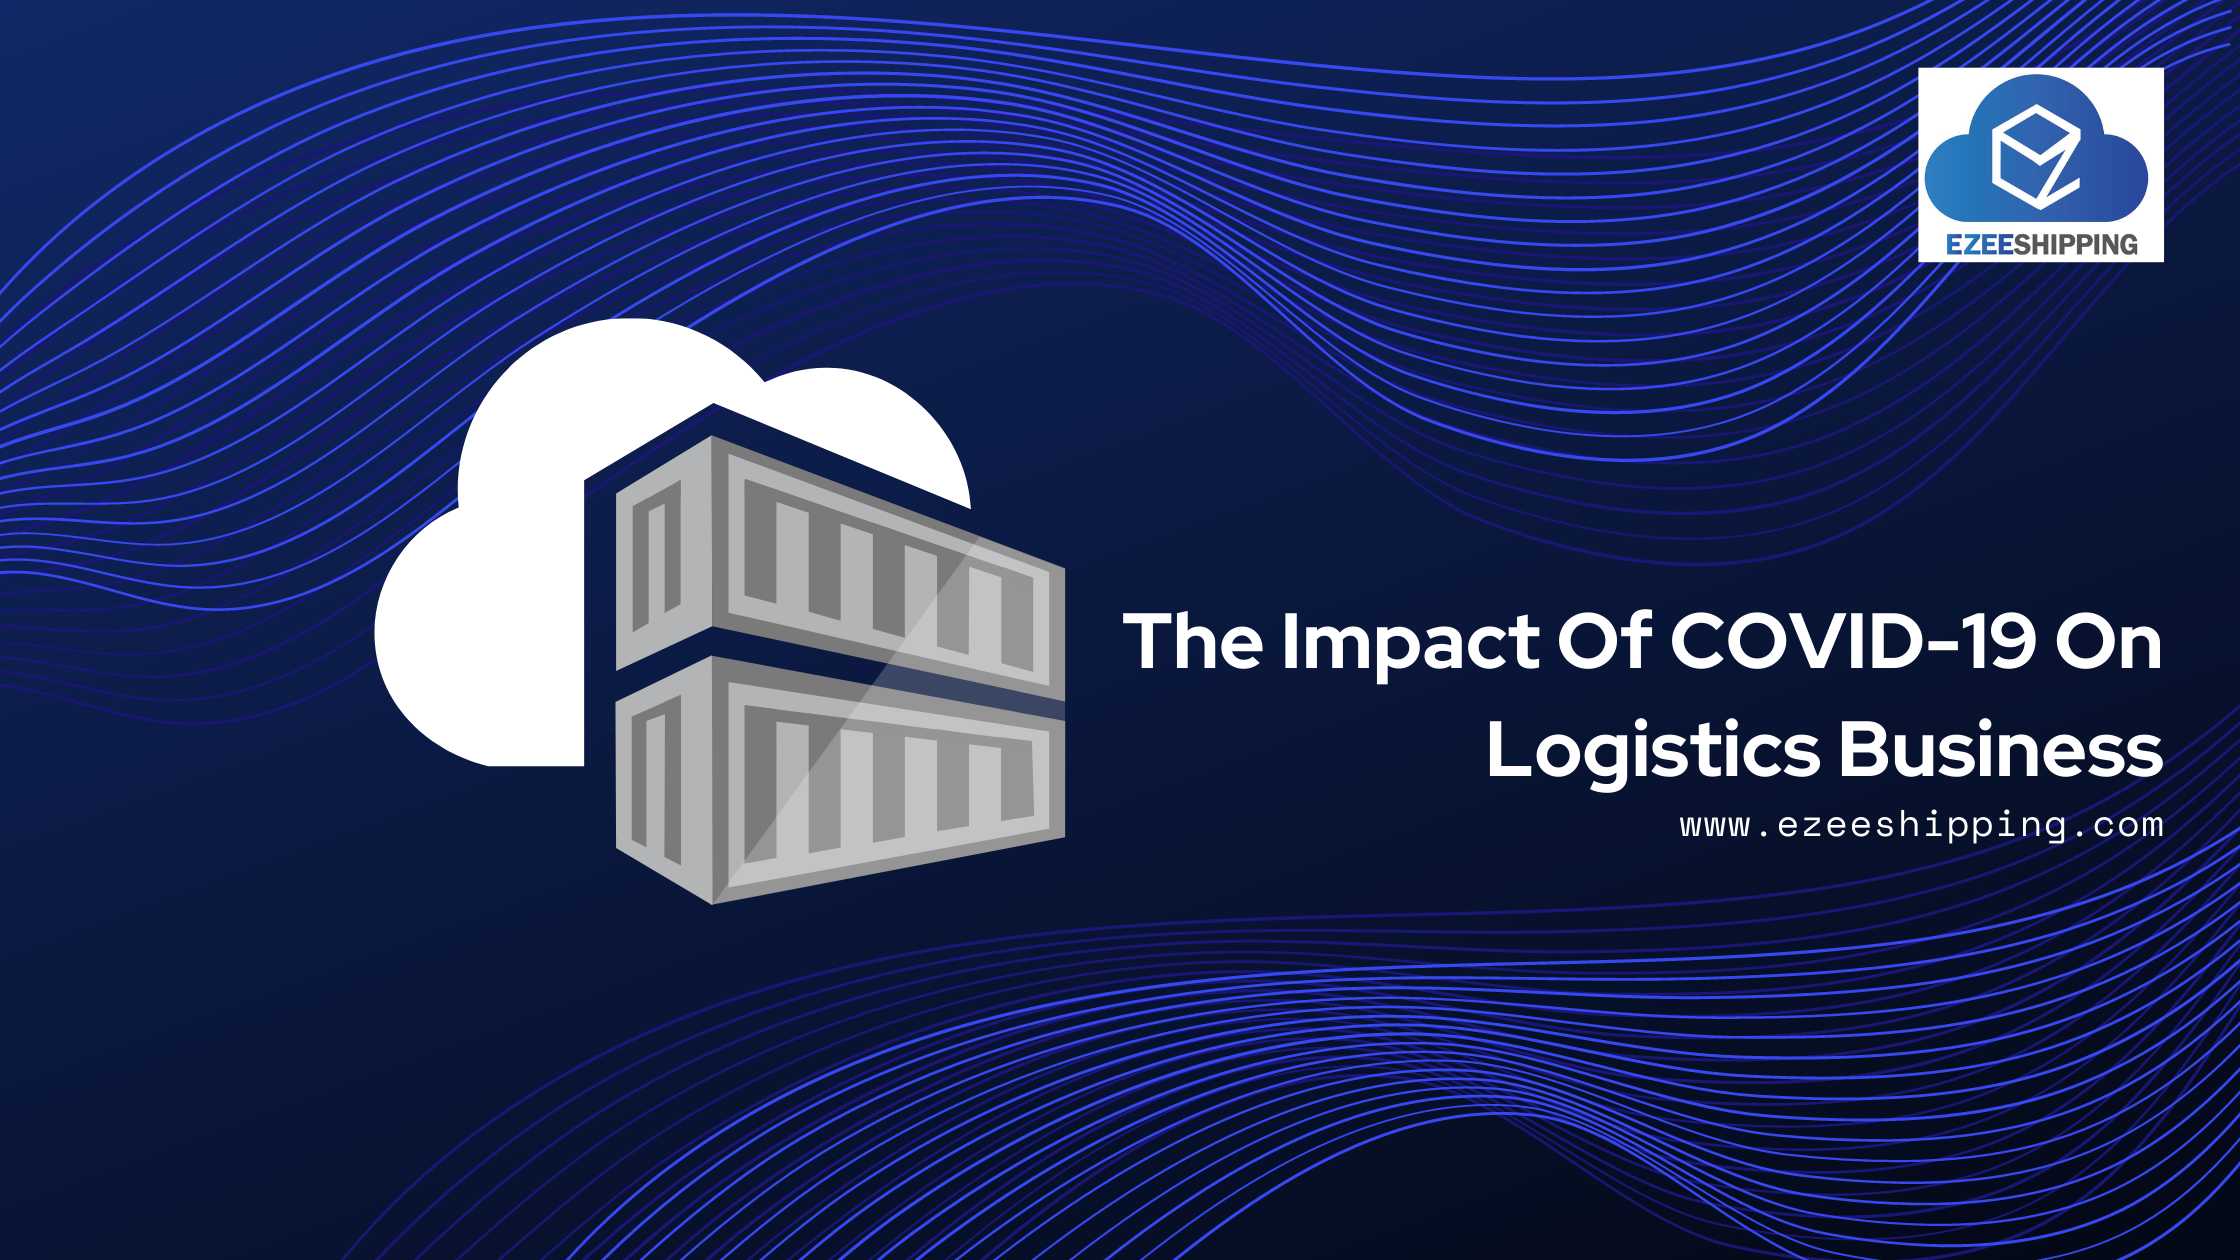 The Impact Of COVID-19 On Logistics Business